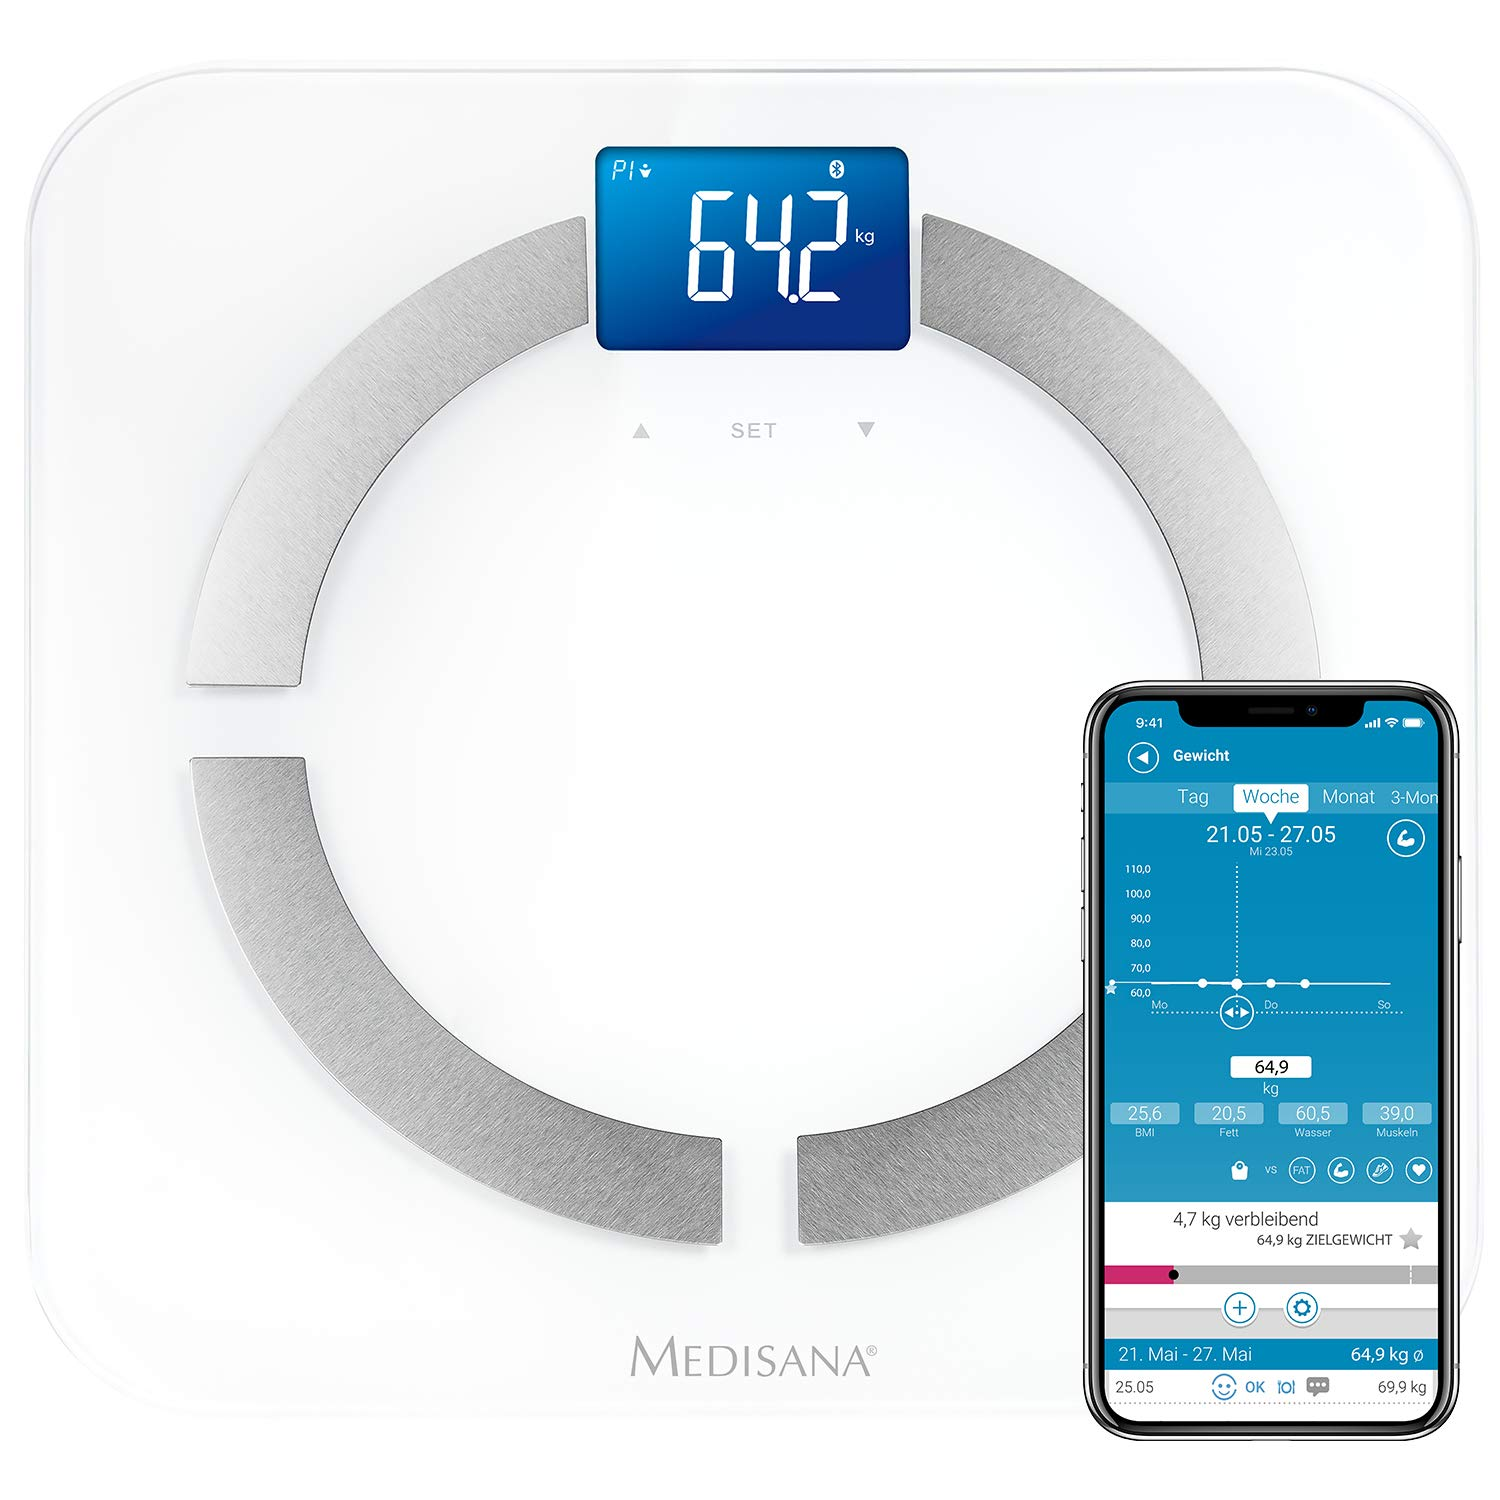 Medisana 40422 BS430 Body Analysis Scale VitaDock App for iOS and Android Measurement of Weight, Body Fat, Body Water and Muscle Mass Bluetooth Data Transfer to iPhone, iPad, iPod, iMac, MacBook or Android Devices by MEDISANA (Image #1)